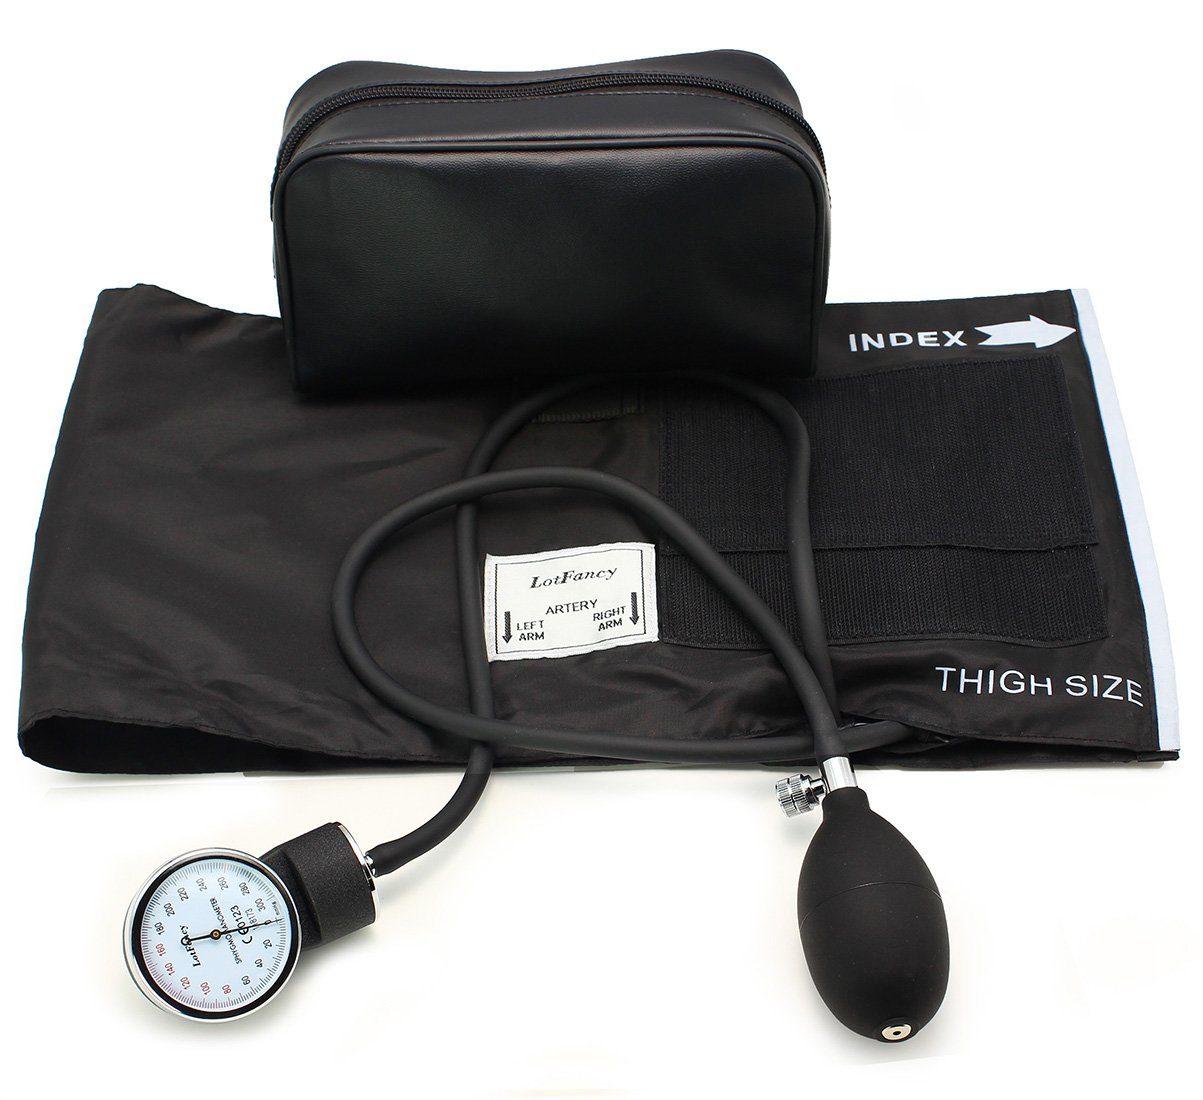 LotFancy Manual Aneroid Sphygmomanometer (Blood Pressure Gauge) with Zipper Case, Thigh Size Cuff, FDA Approved (Adult Cuff XL 15.9-25.9 inches)